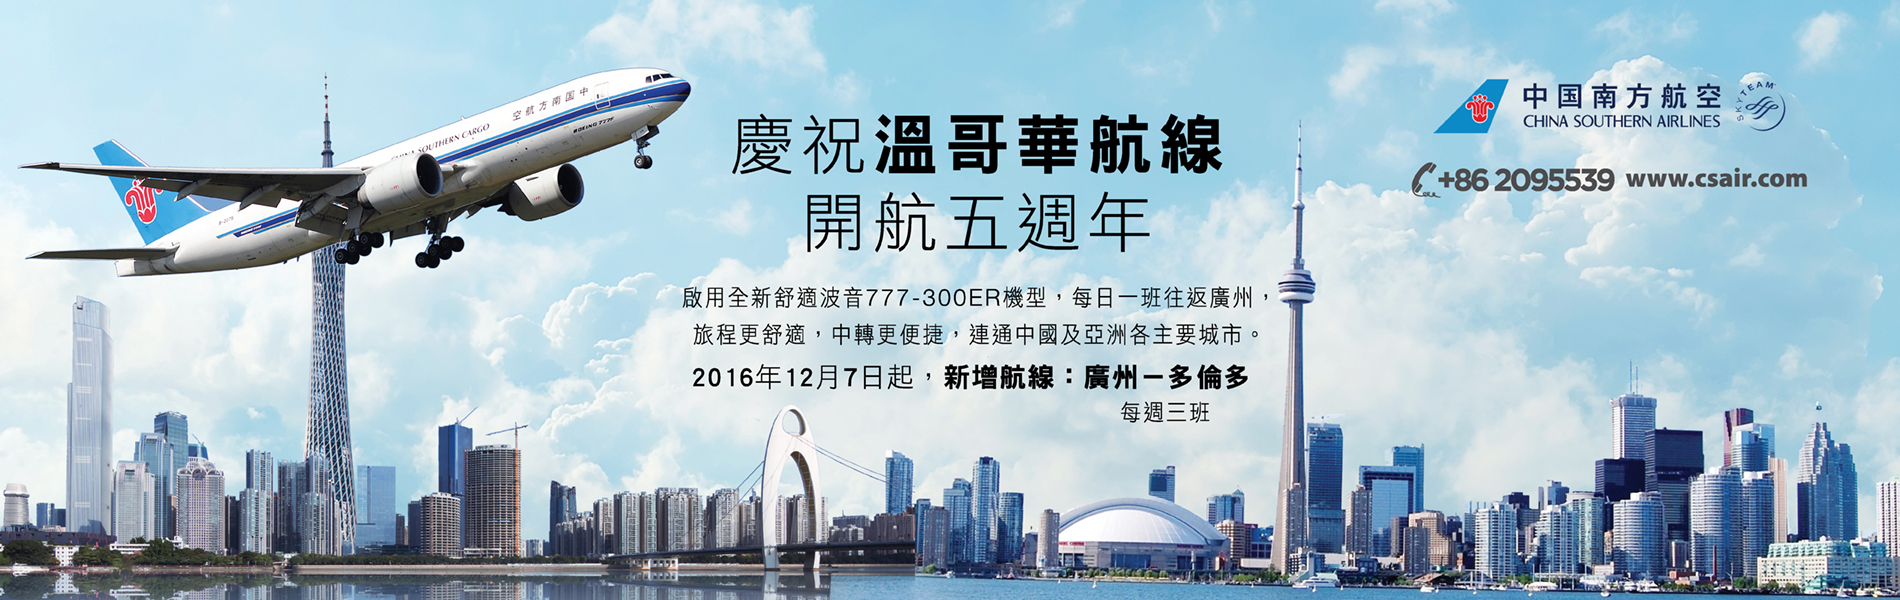 chinasourthairline-web1900x600px-chtr